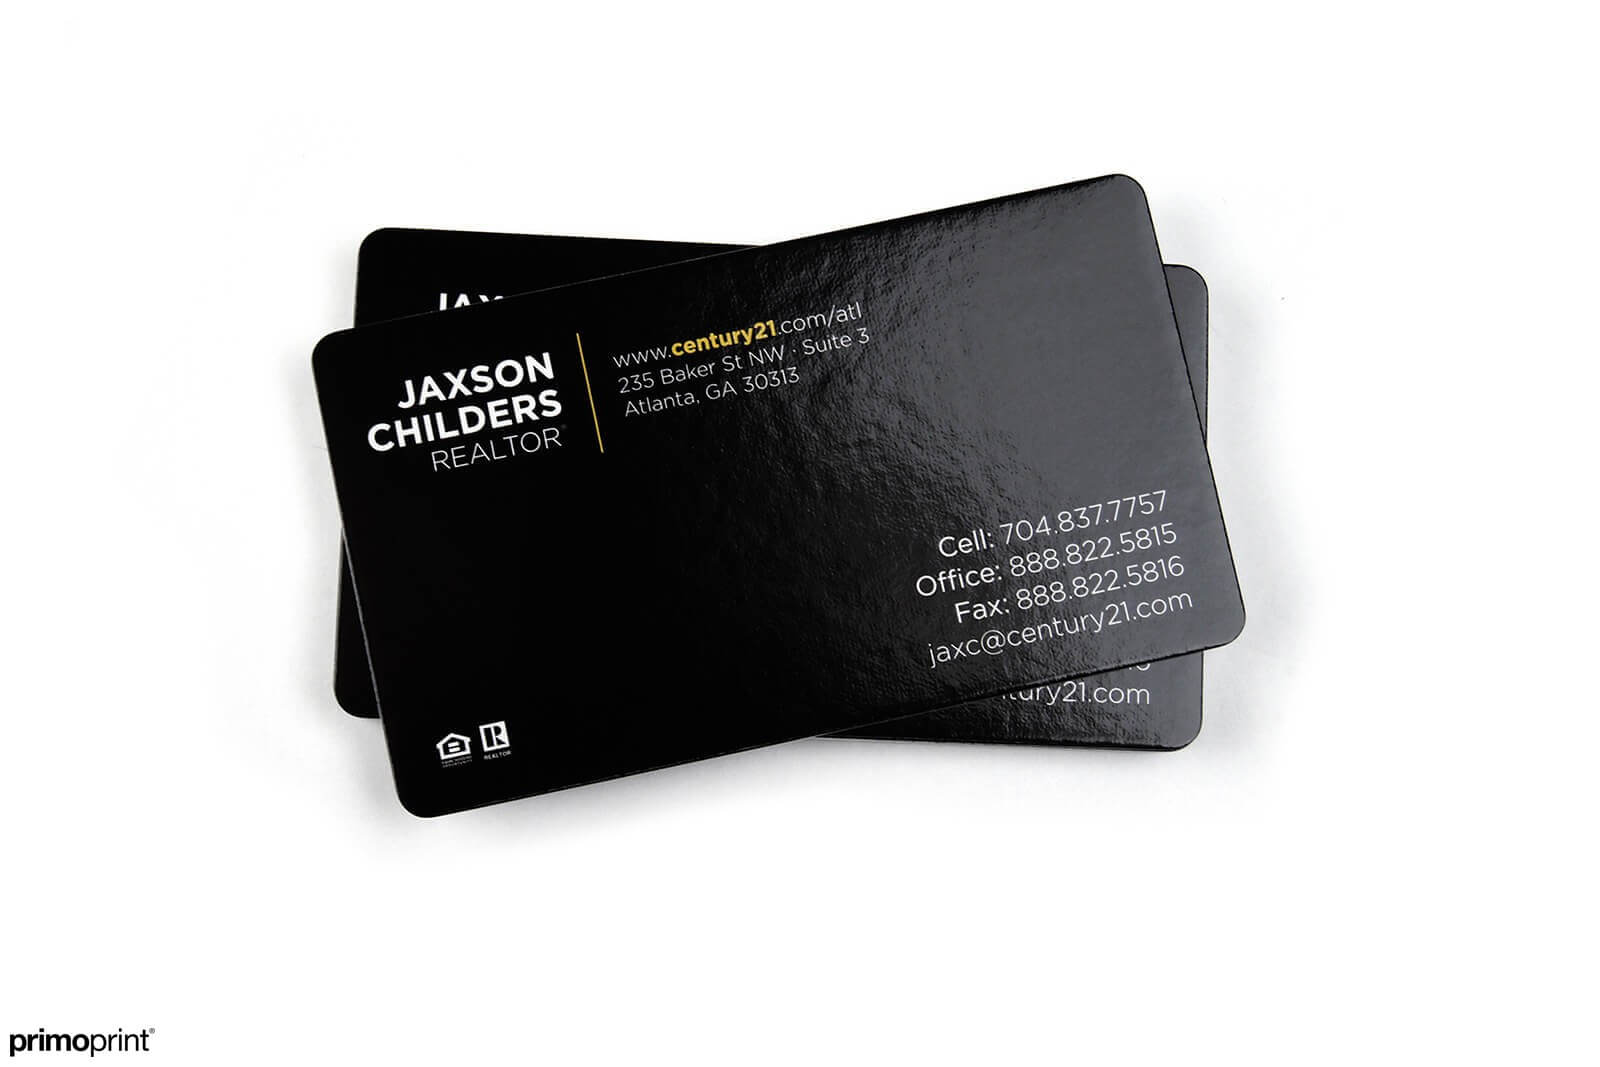 16PT UV Coated Business Cards with 1/8 inch rounded corners.